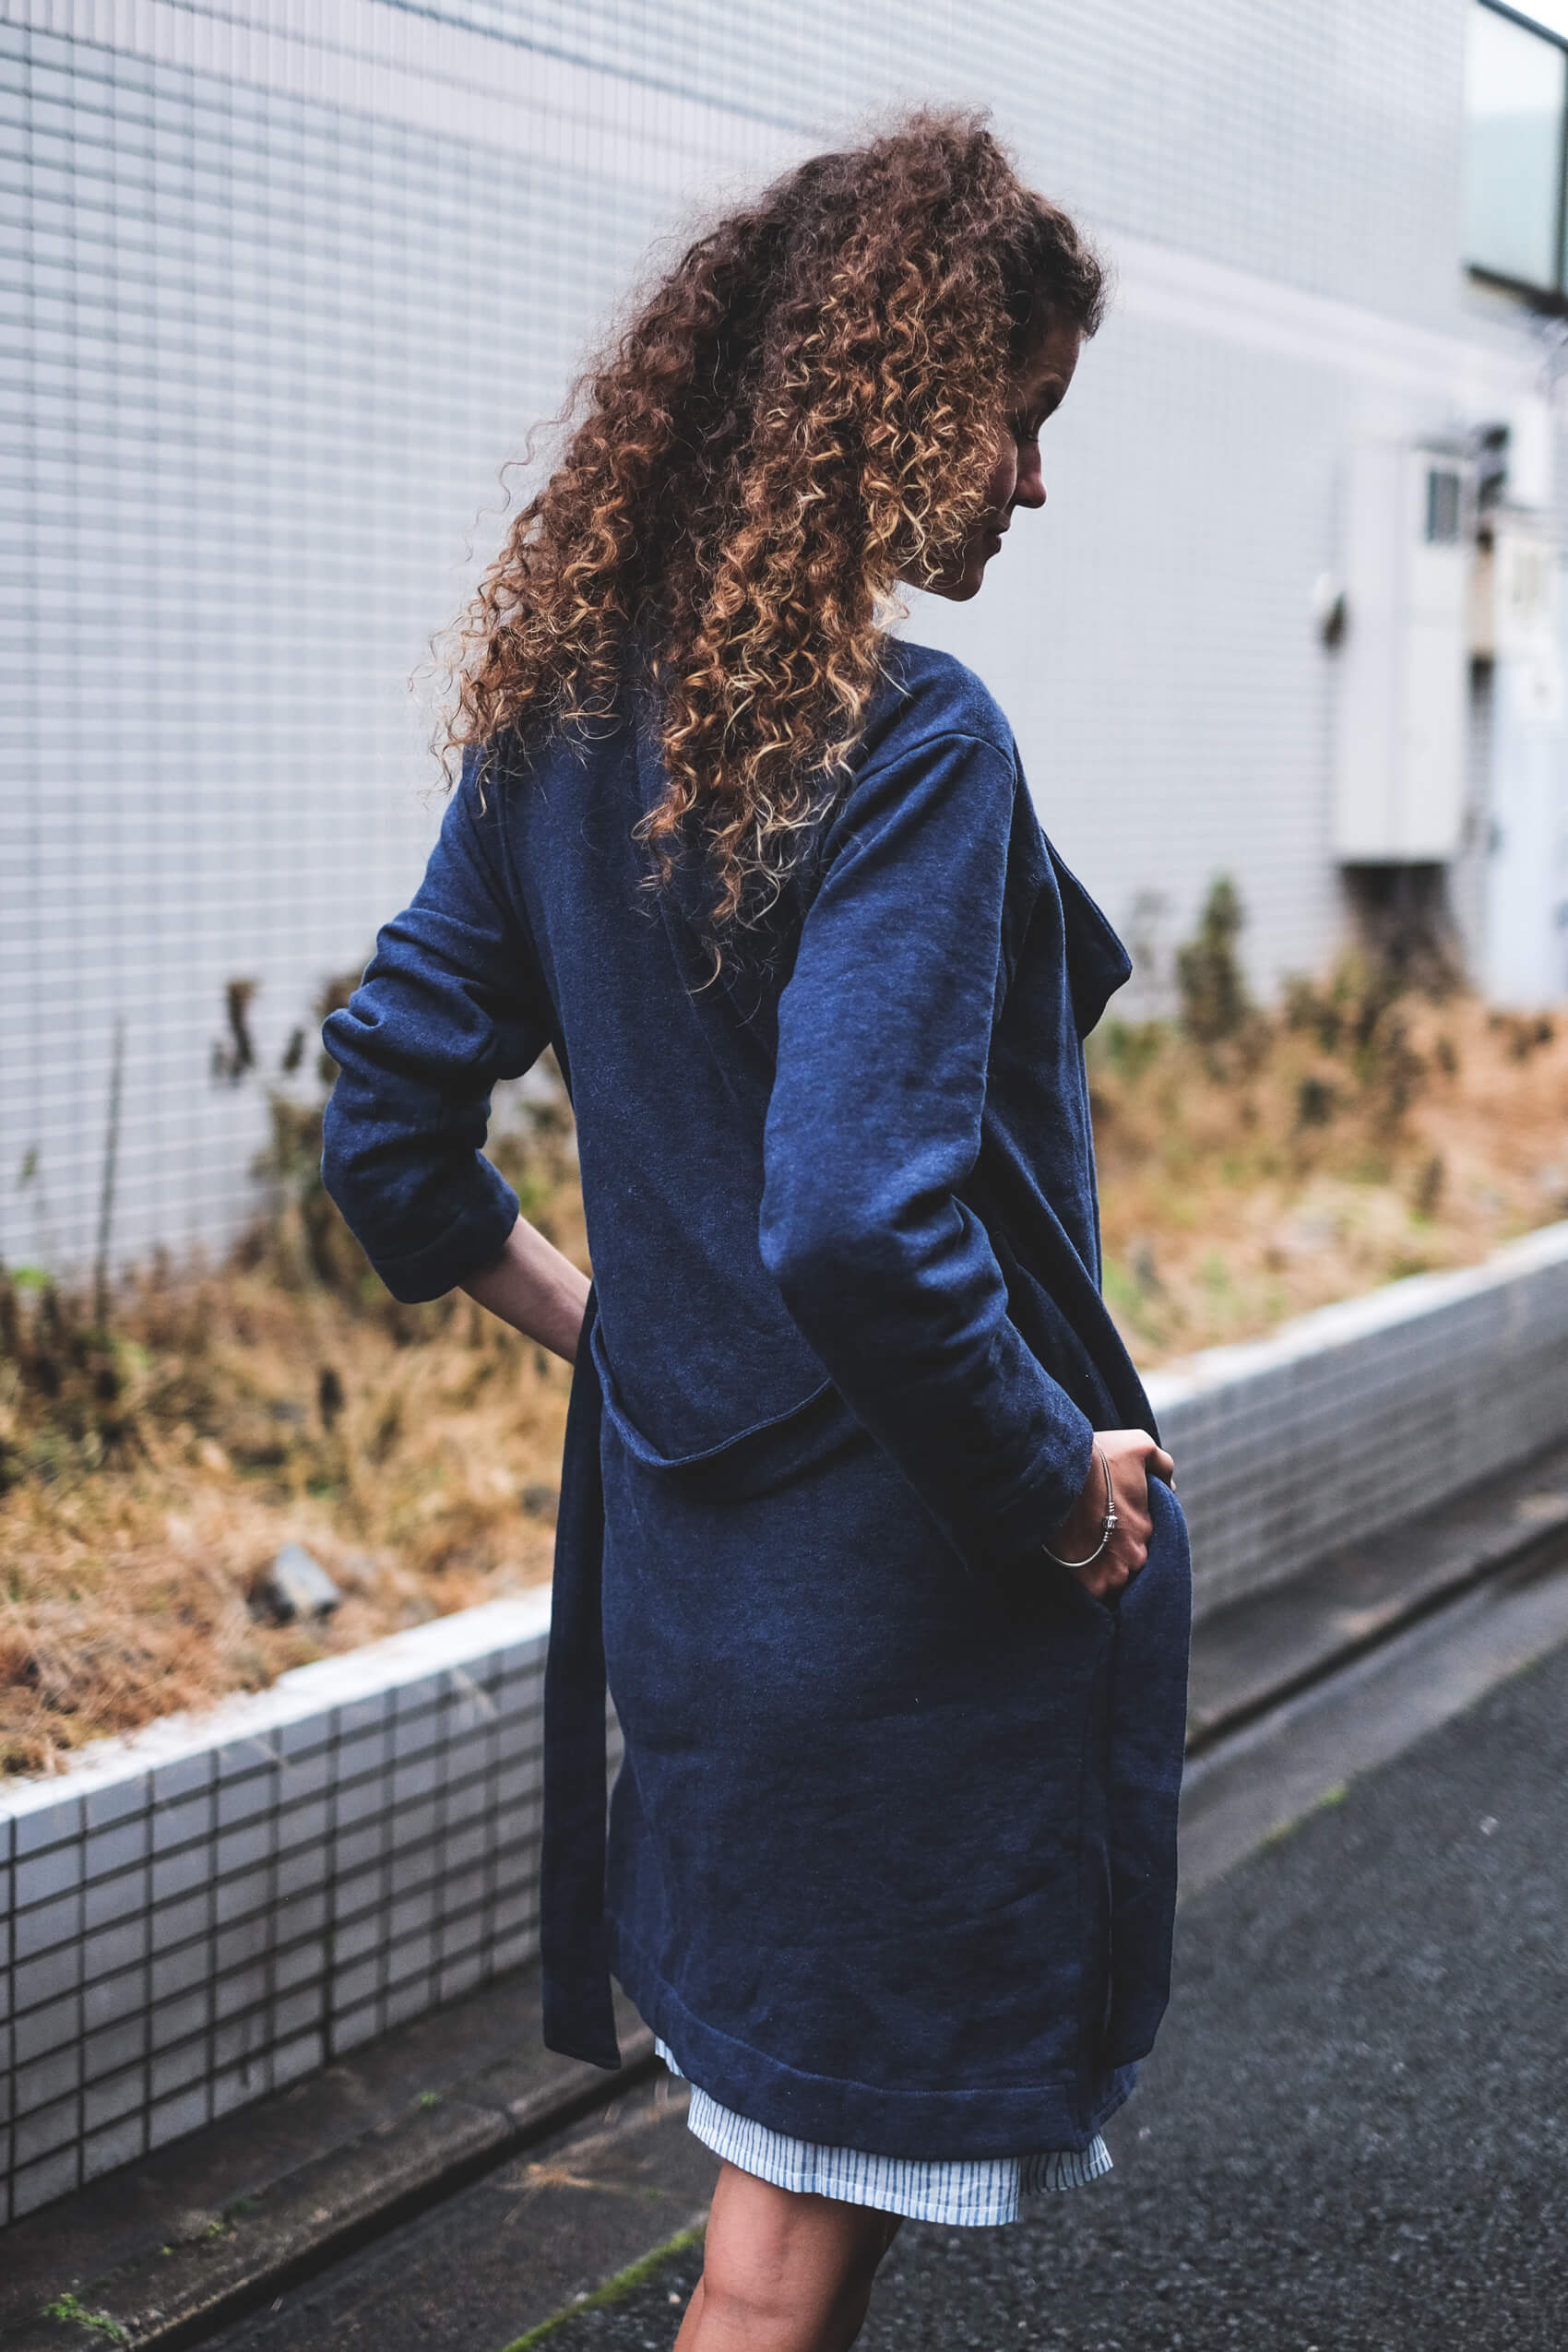 Capsule Collection PT (5 of 13)